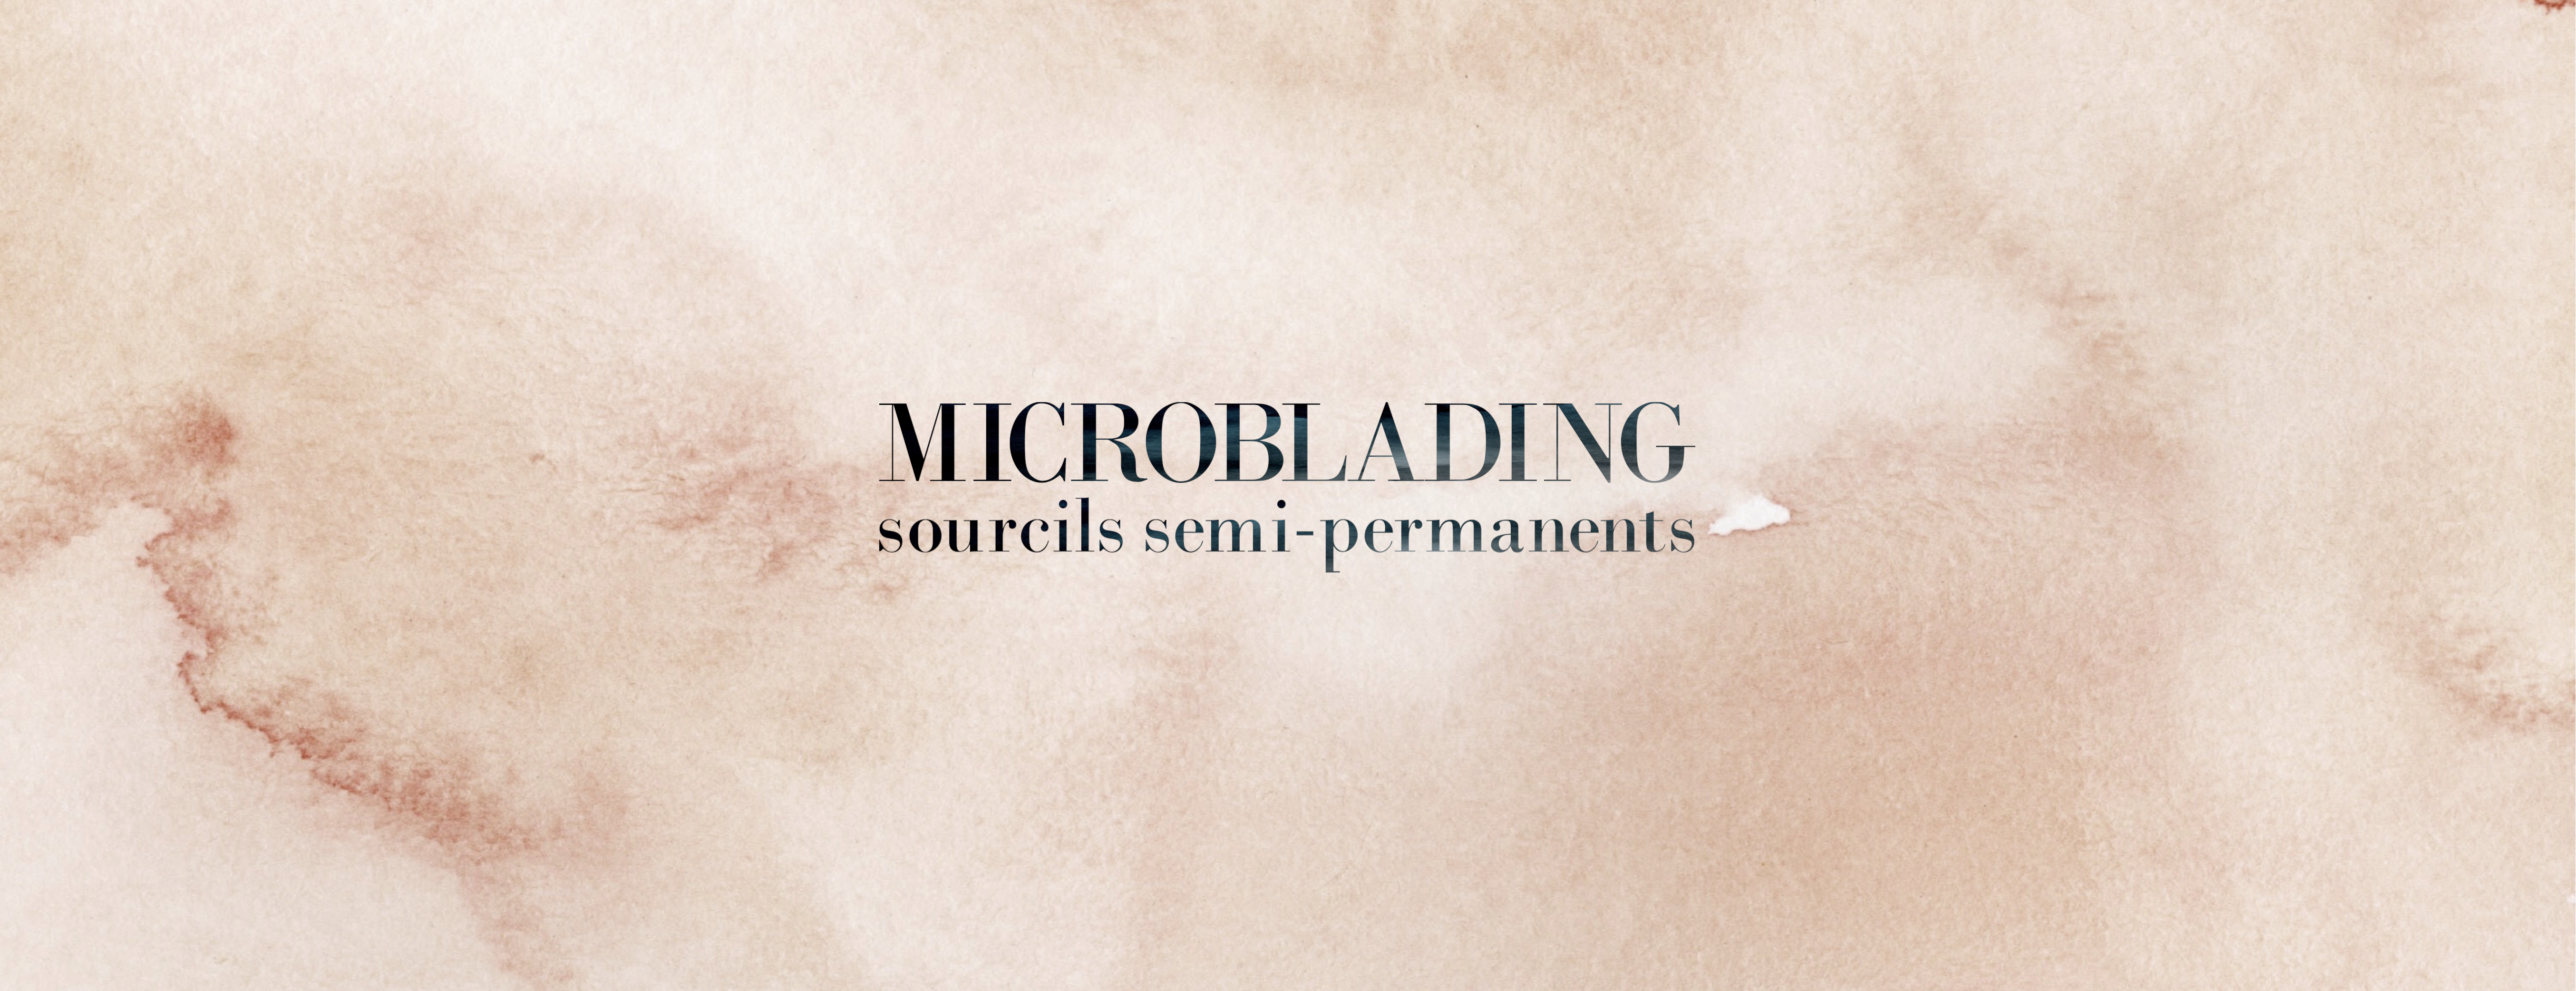 microblading sourcils semi-permanents